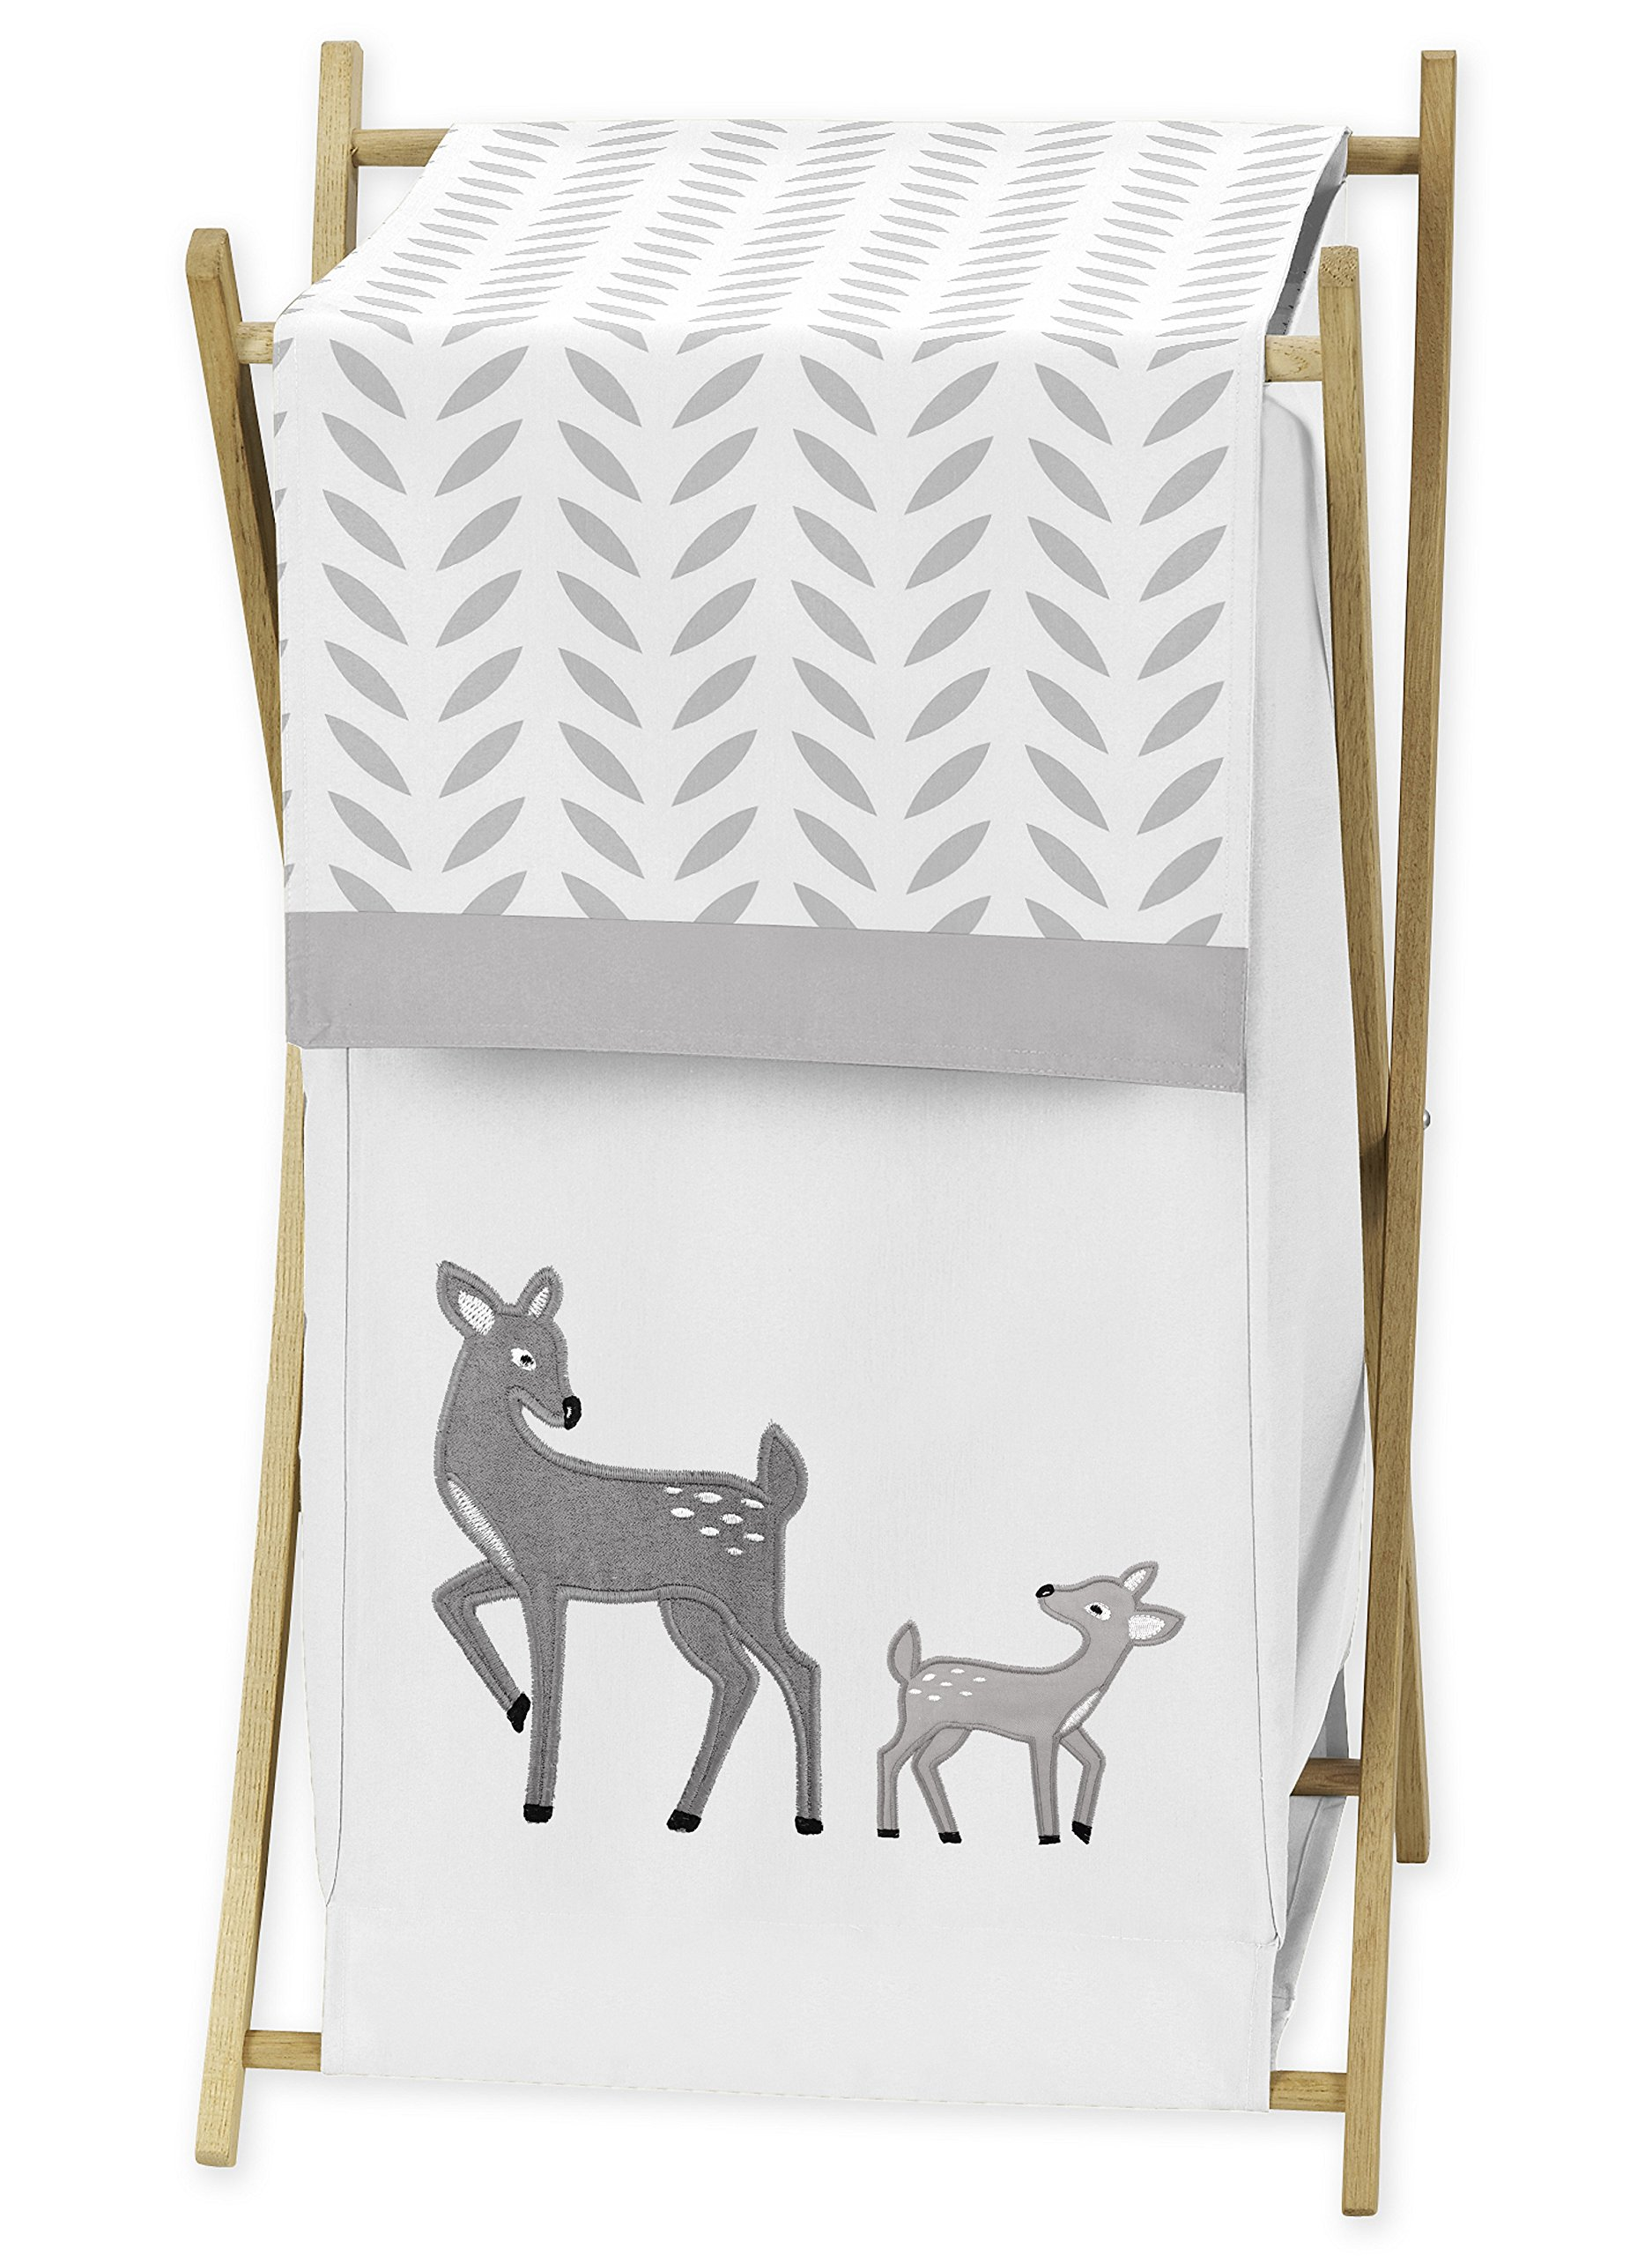 Sweet JoJo Designs Baby/Kids Clothes Laundry Hamper for Grey Gold and White Forest Deer and Dandelion Collection Girl or Boy Bedding Set